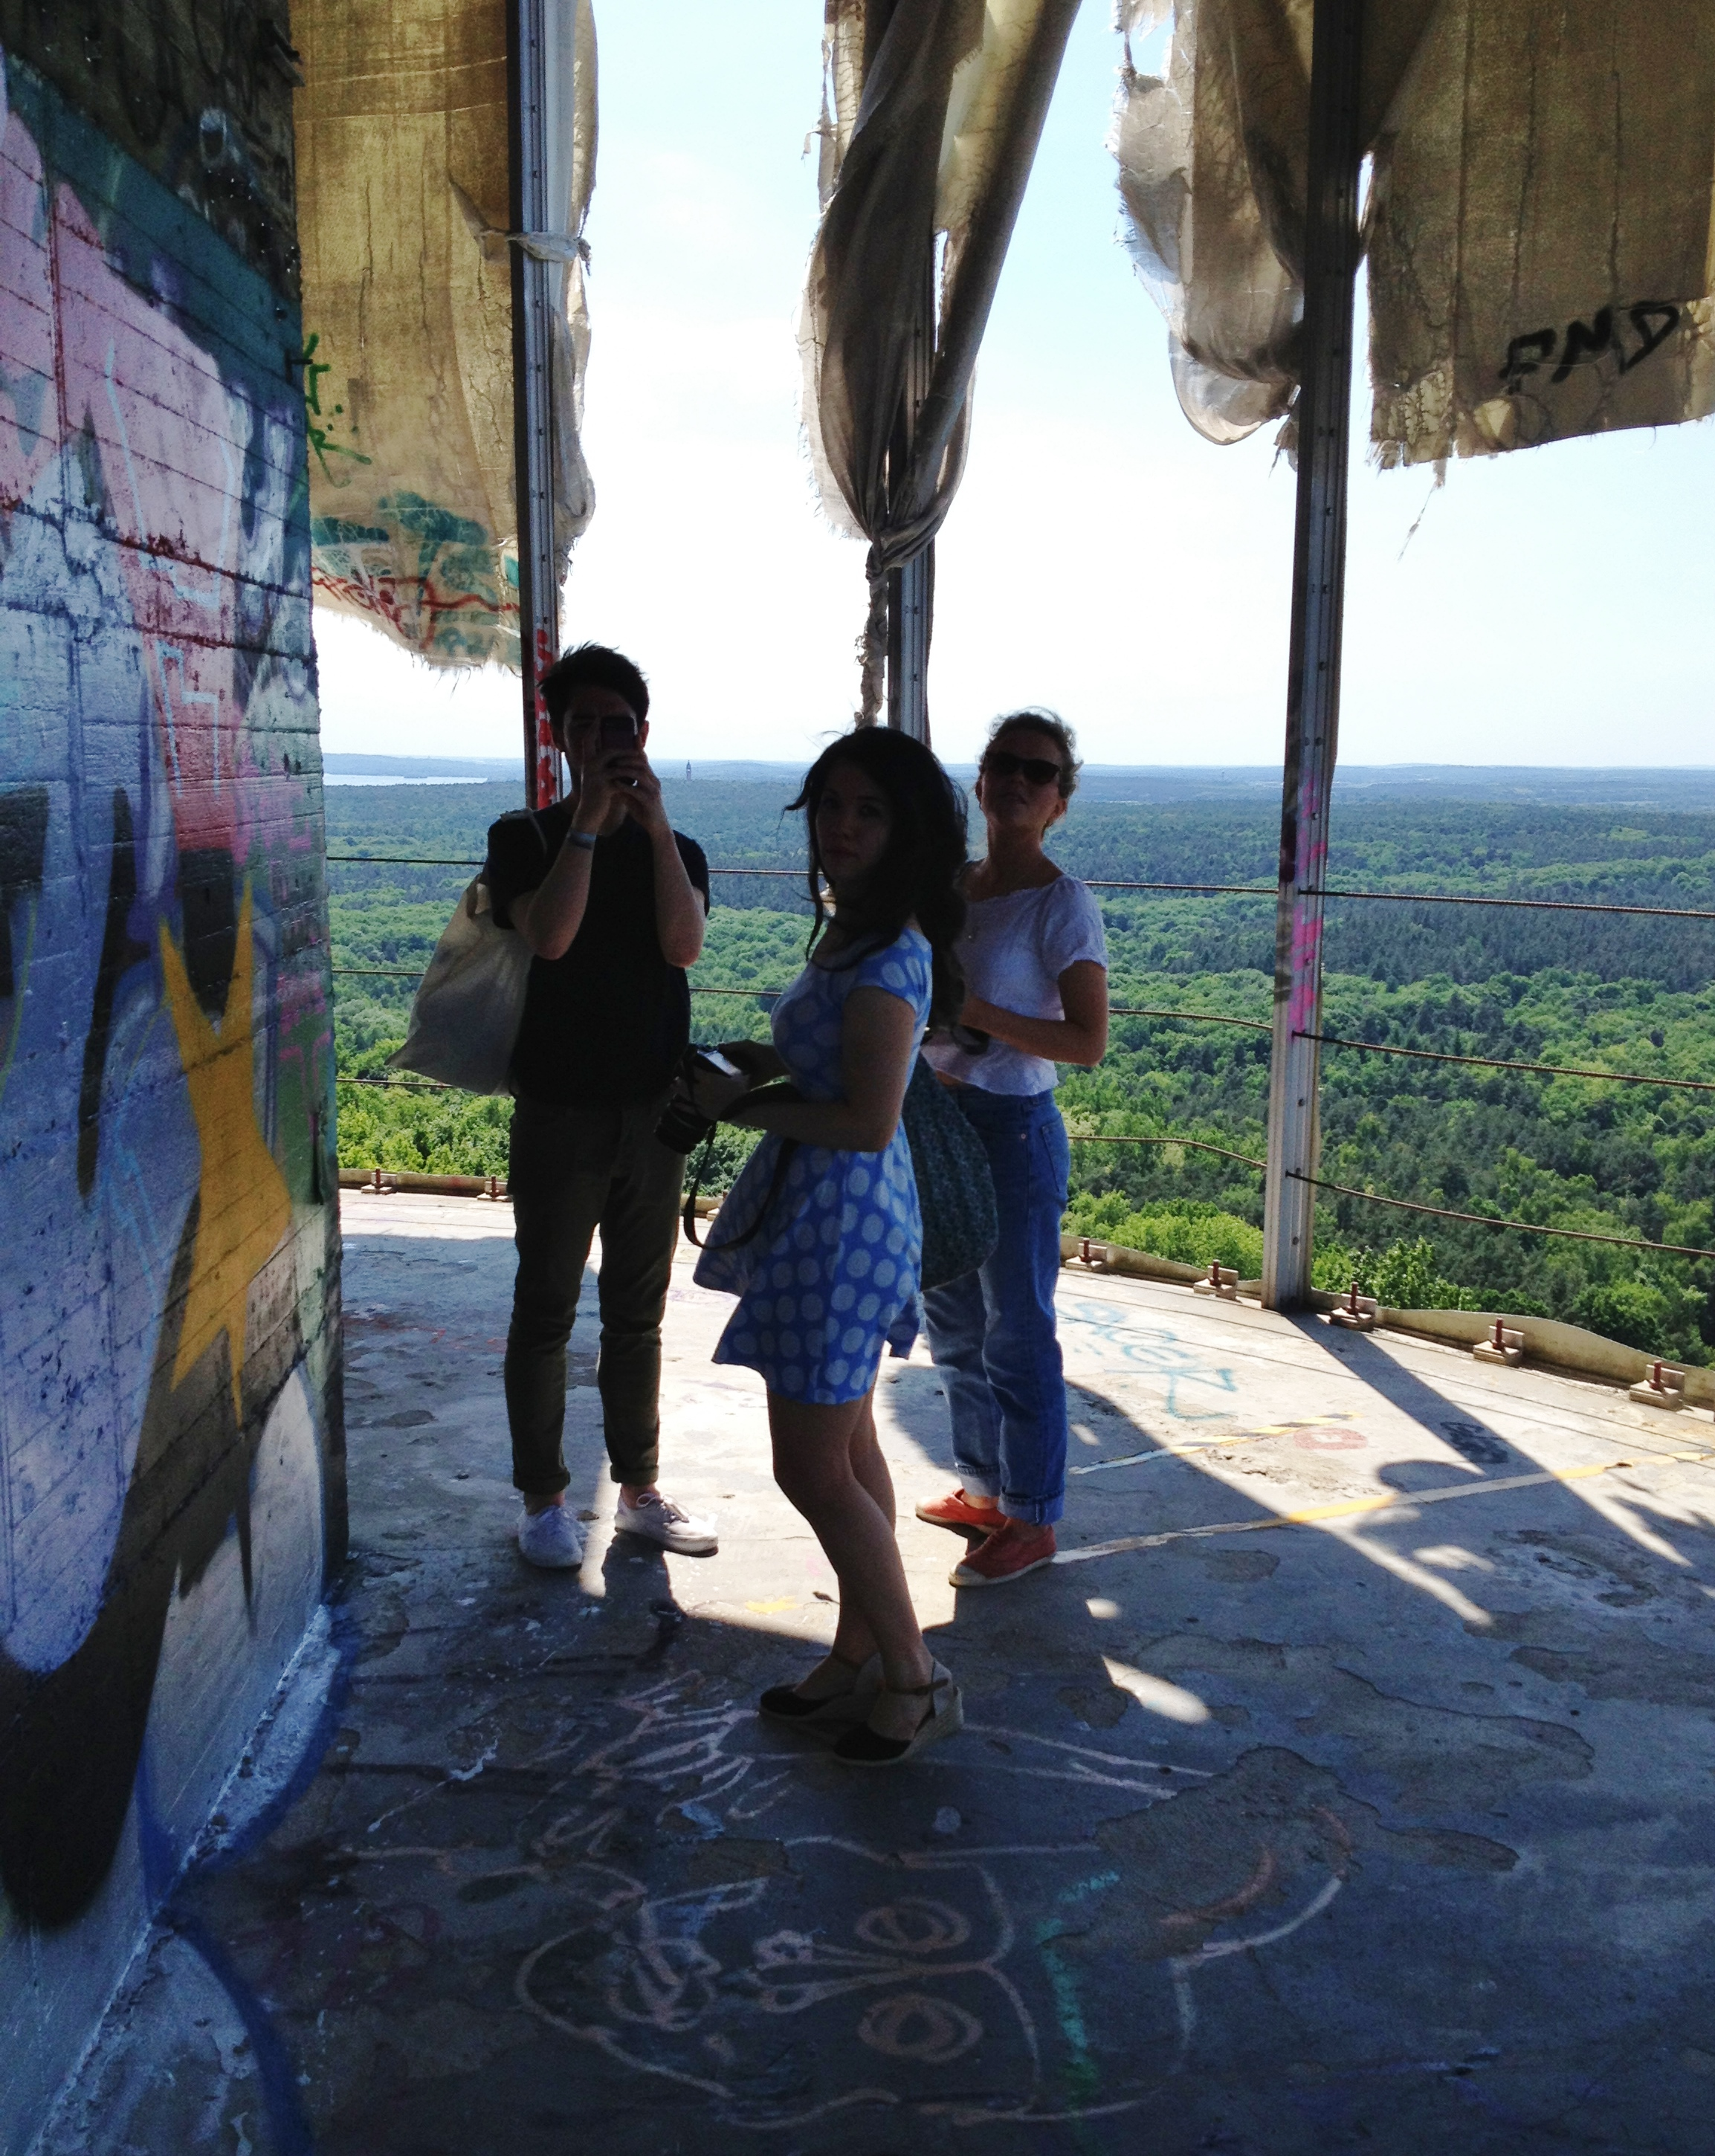 View of Berlin from Teufelsberg spy station